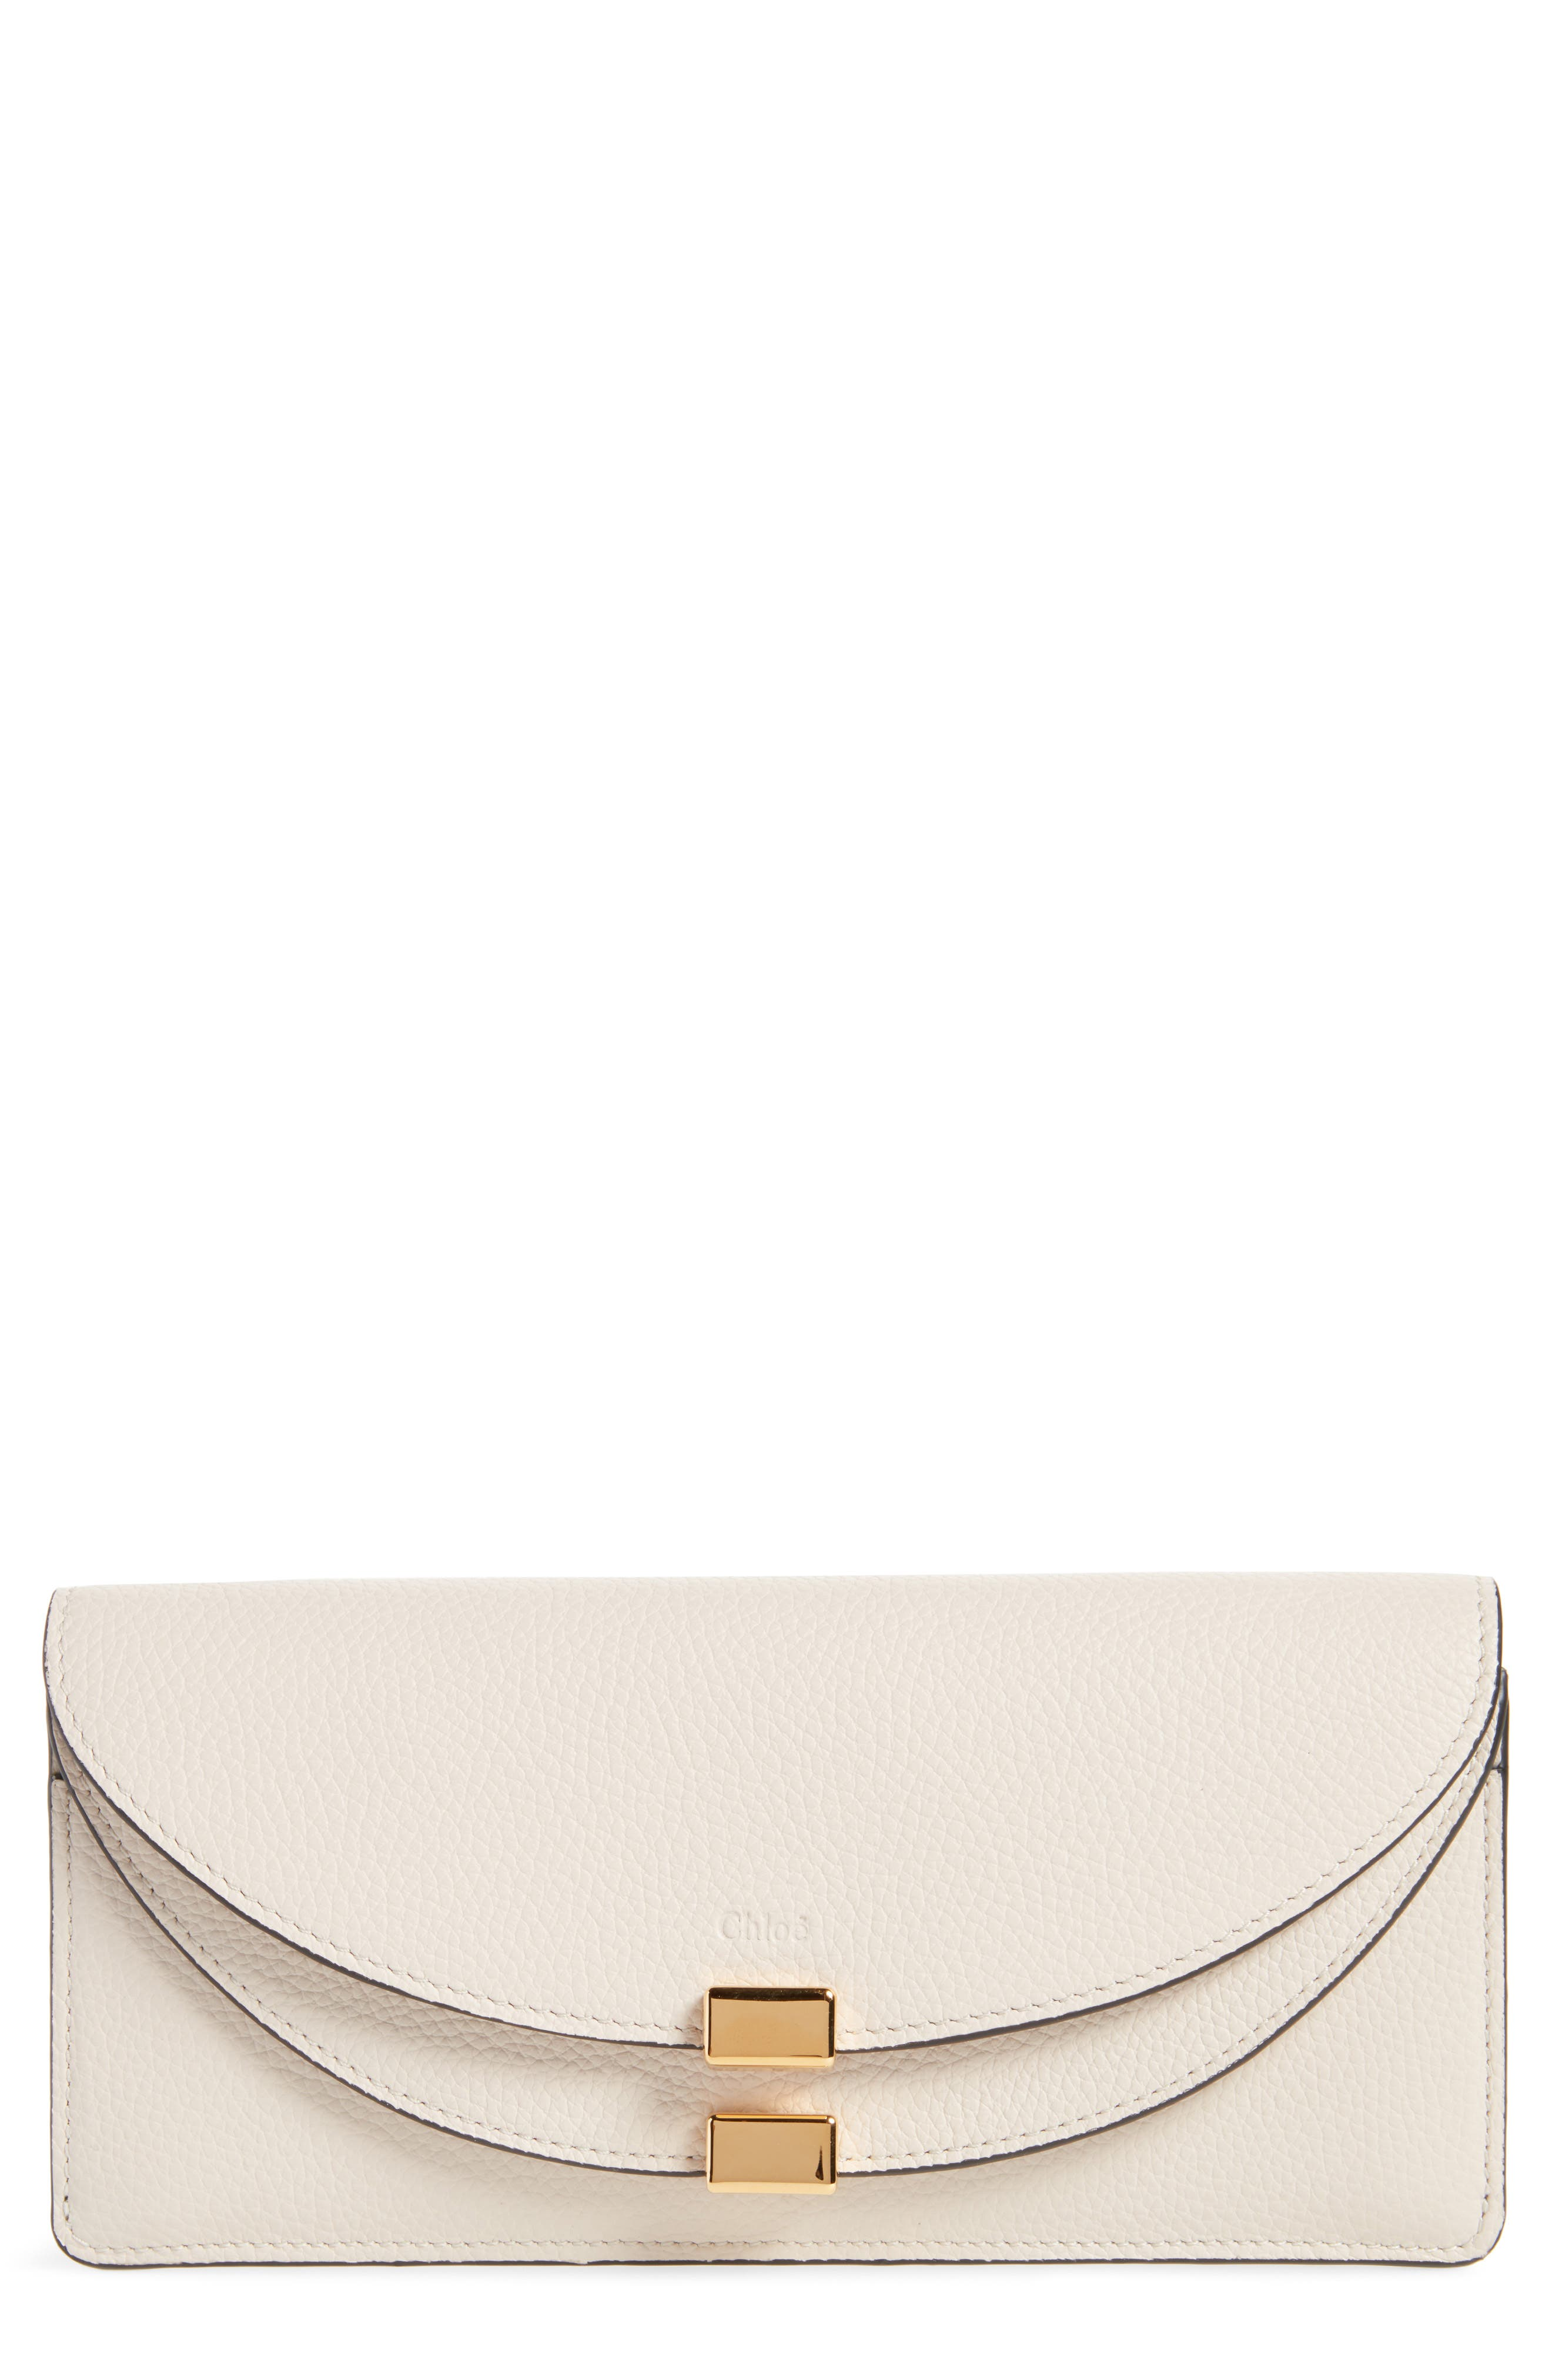 Georgia Continental Leather Wallet,                             Main thumbnail 1, color,                             ABSTRACT WHITE